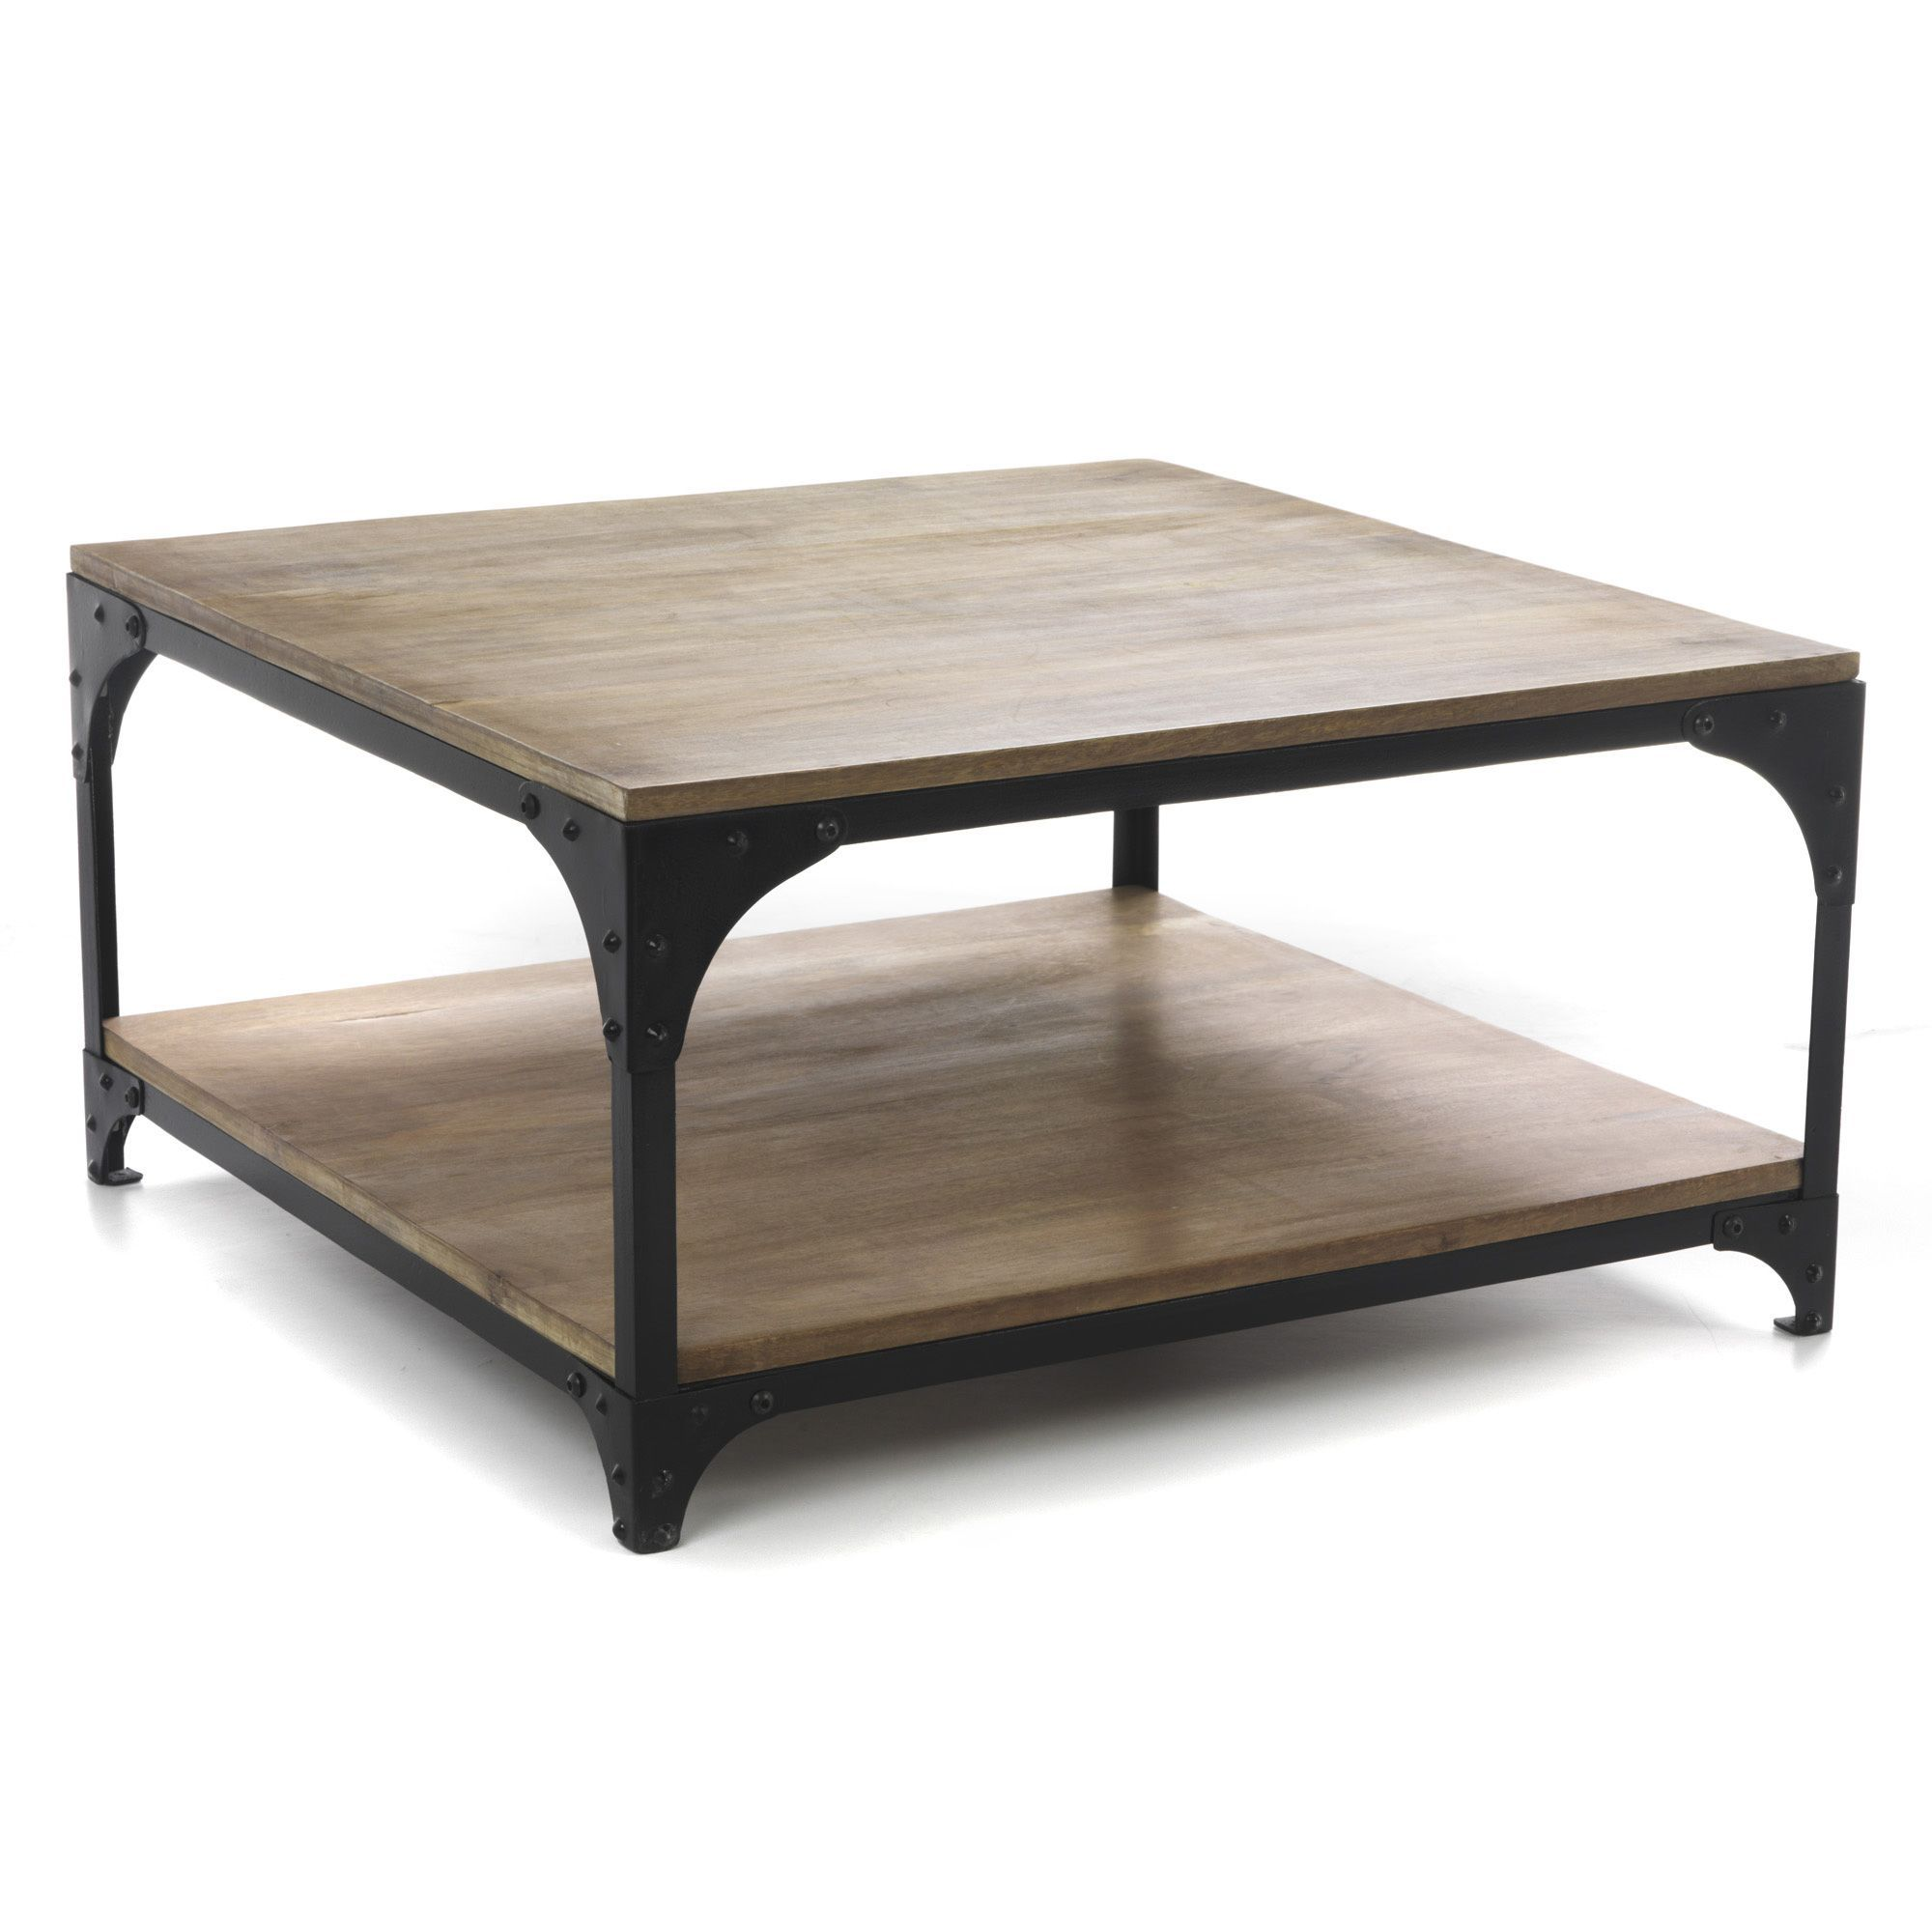 Table basse carr e industrielle naturel new ately les for Canape salle a manger